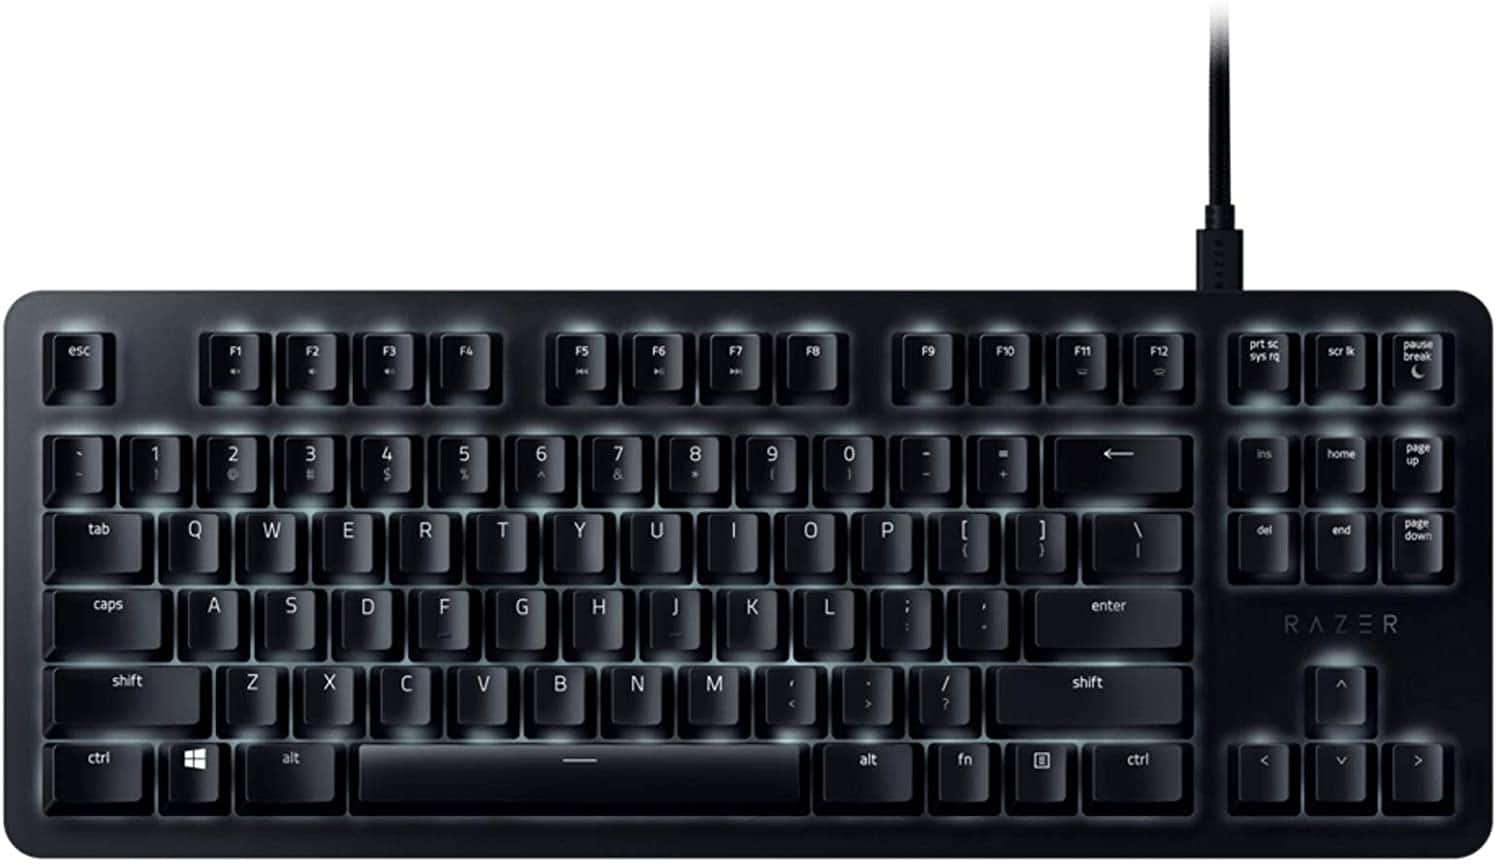 Razer BlackWidow Lite TKL Tenkeyless Mechanical Keyboard - Black $61.59 - Amazon